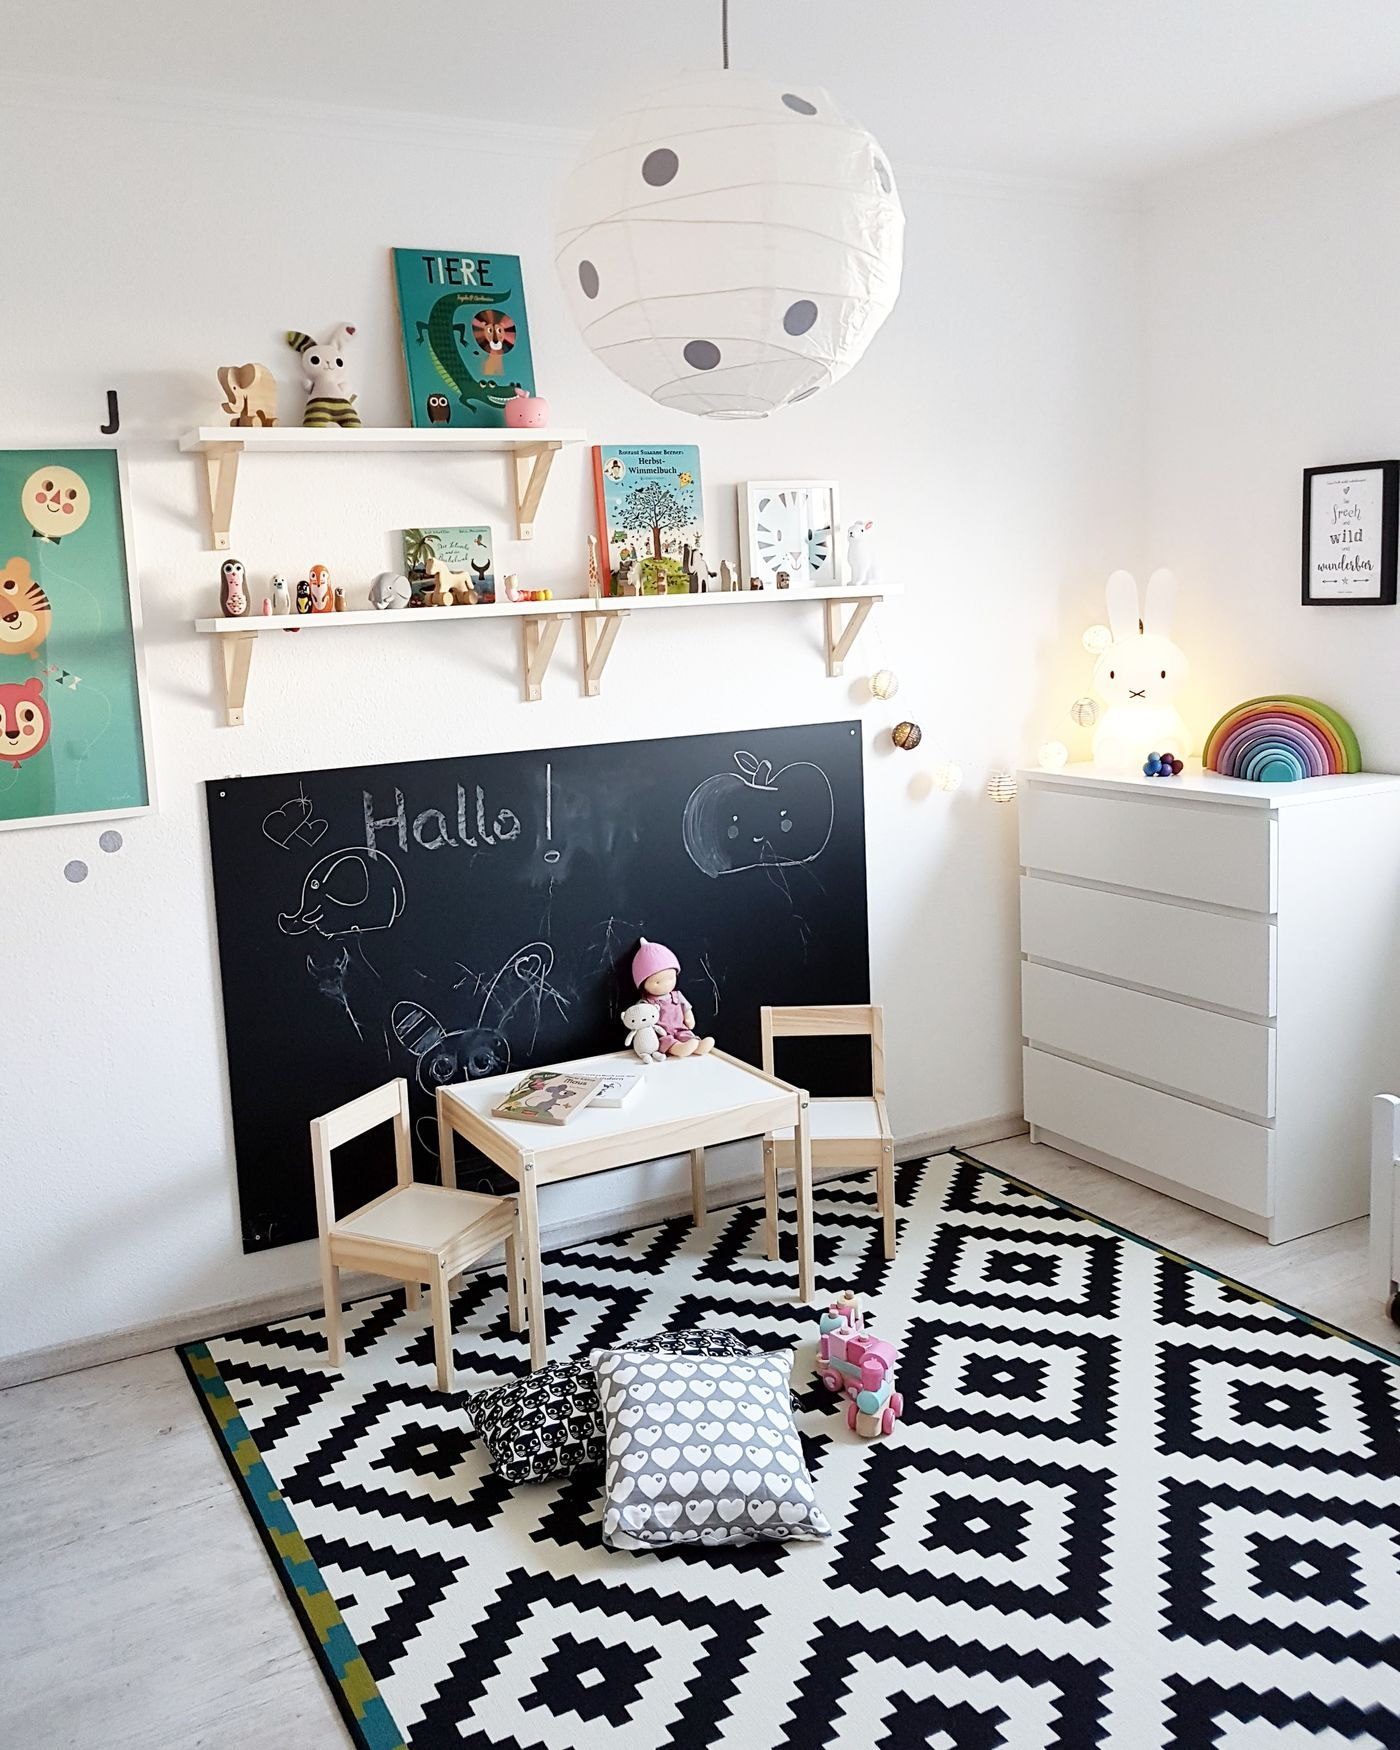 die sch nsten ideen und inspirationen f r kinderm bel. Black Bedroom Furniture Sets. Home Design Ideas